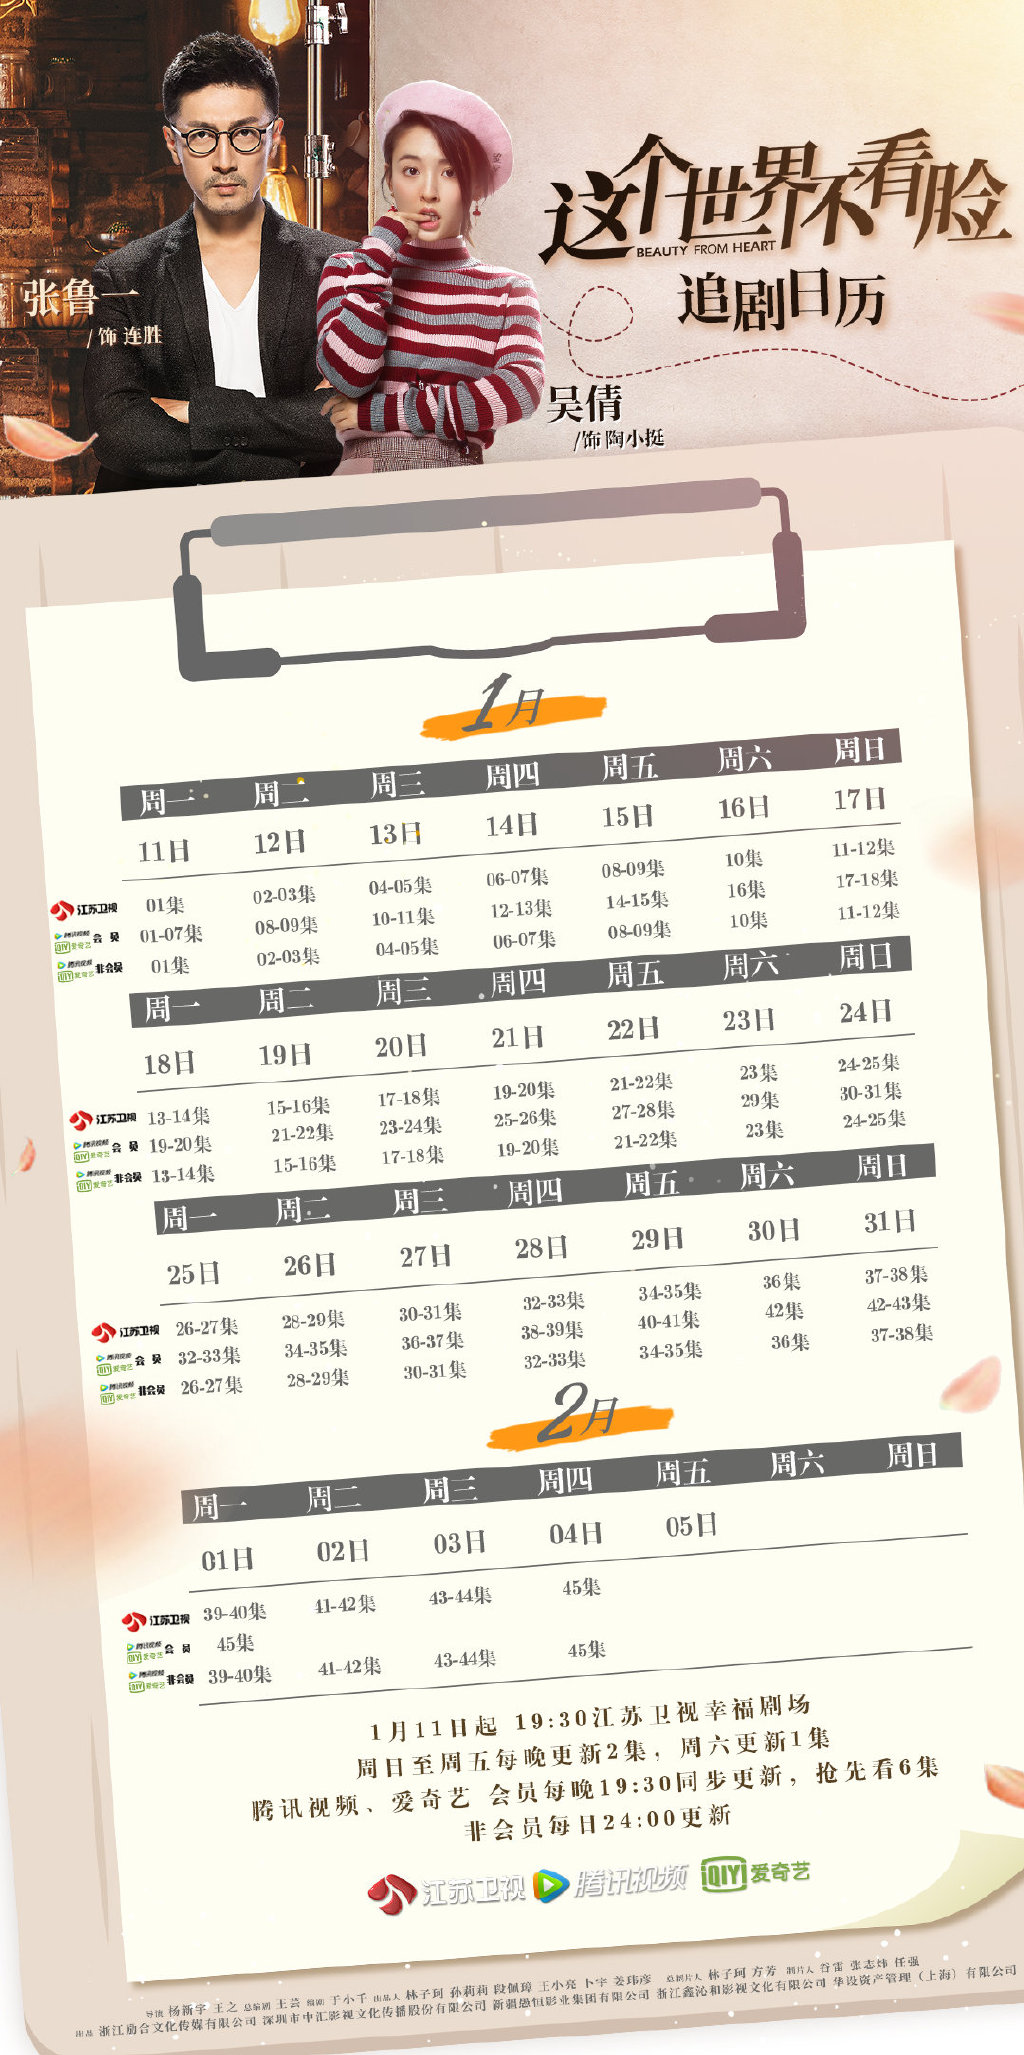 Beauty From Heart Chinese Drama Airing Calendar